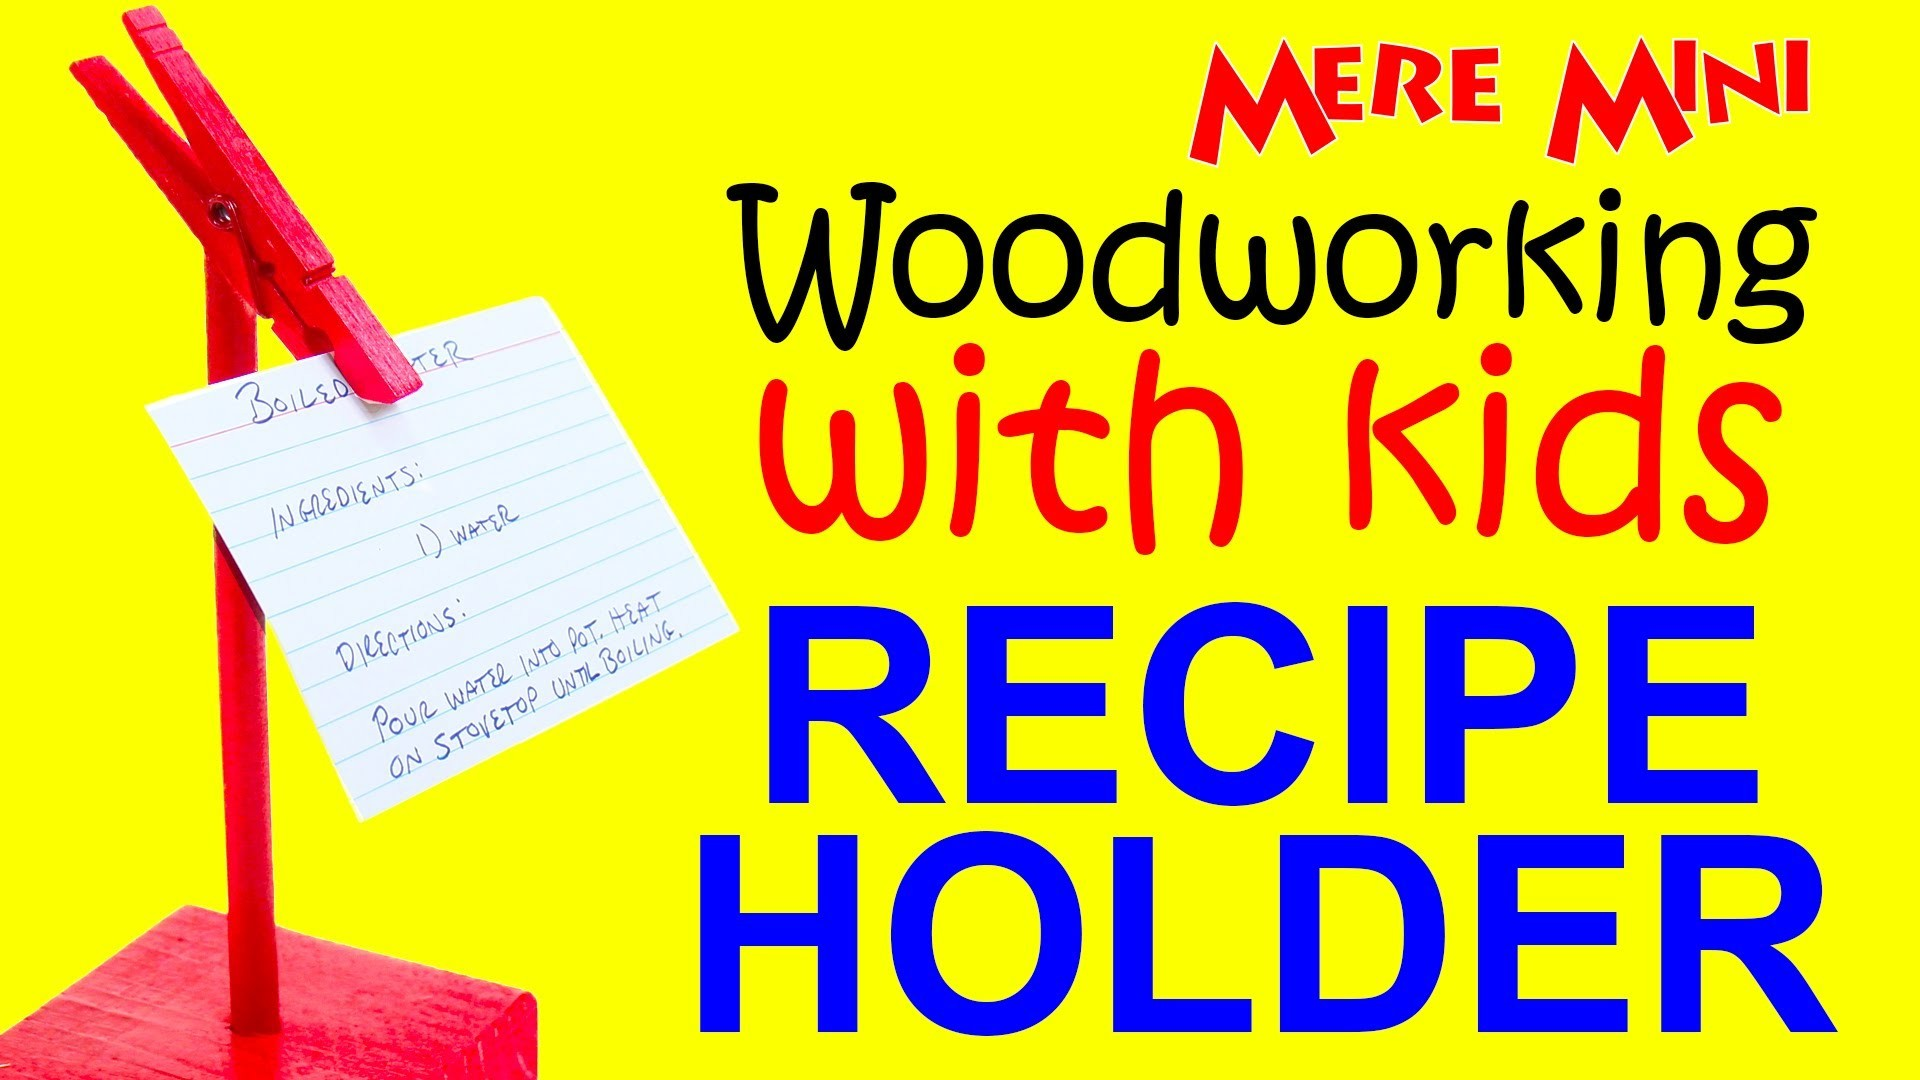 Kids' woodworking project. Make a recipe holder. Great gift idea! | Mere Mini